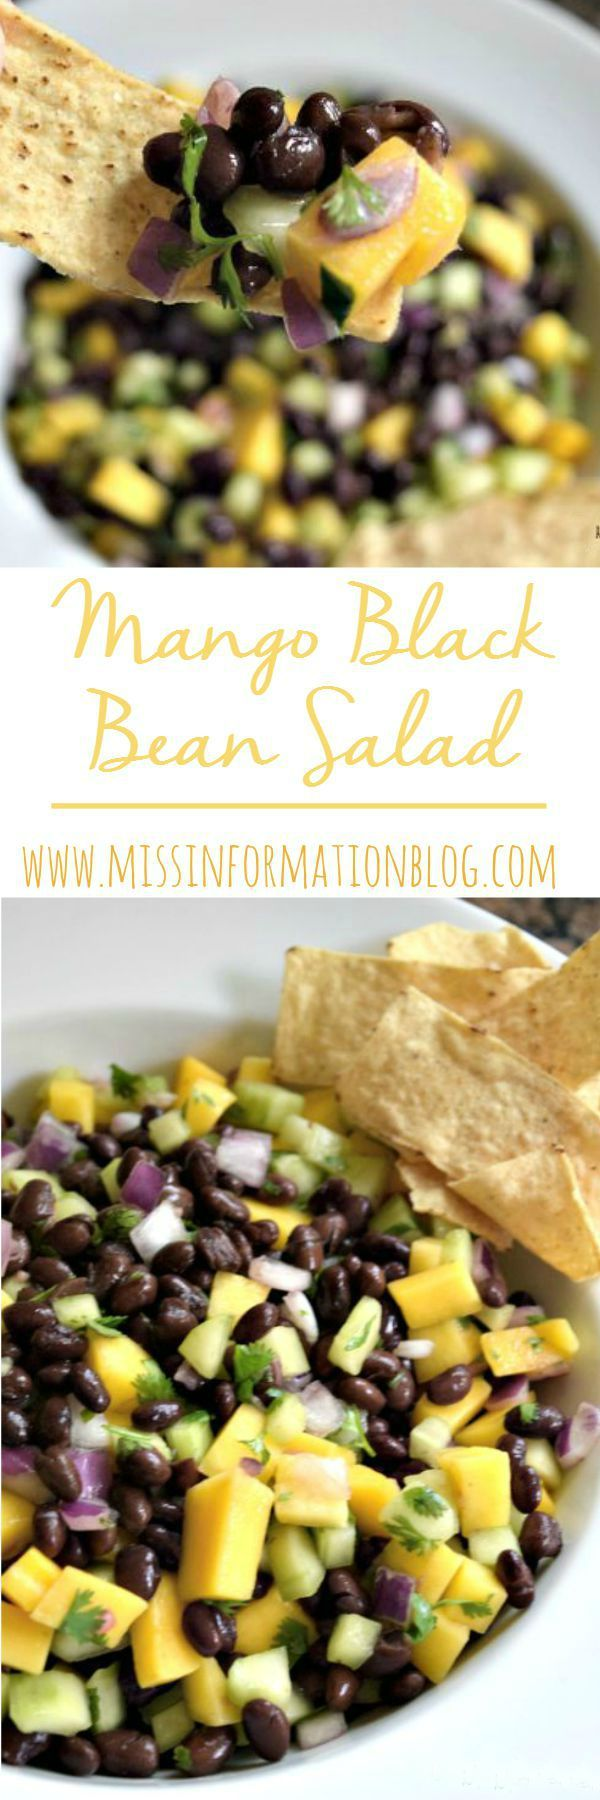 Mango Black Bean Salad Recipe – Miss Information